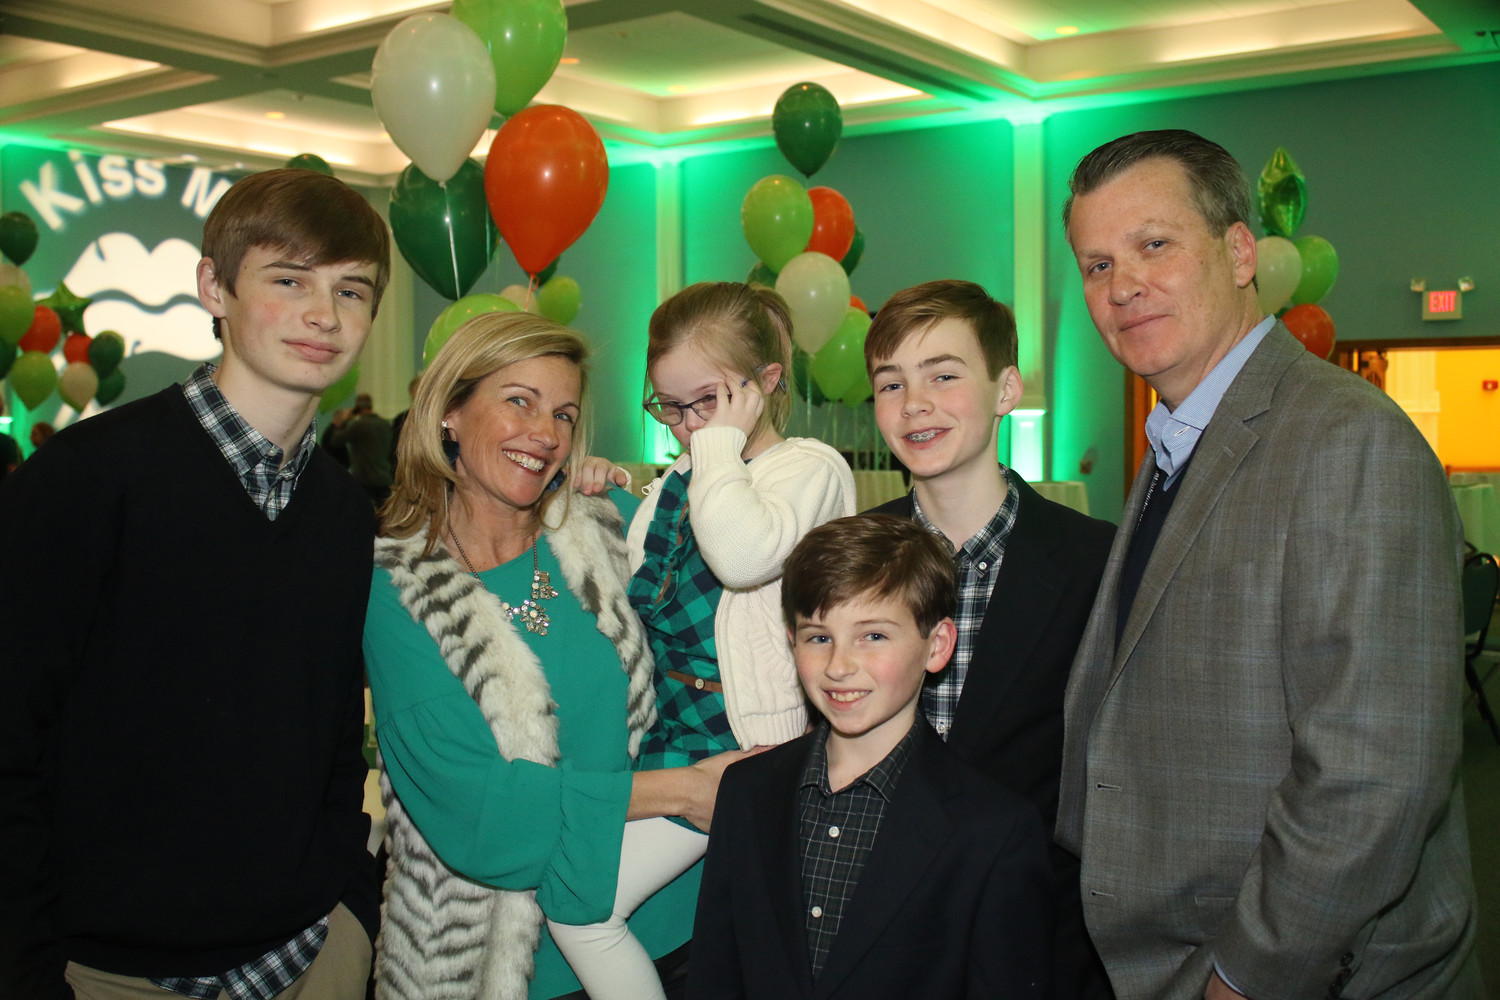 Tracy Kirley, second from left, of Rockville Centre, was honored at the celebration. She joined her sons Danny, 15, left, Timmy, 13, Kevin, 11, daughter Bryn, 8, and her husband, Gene.